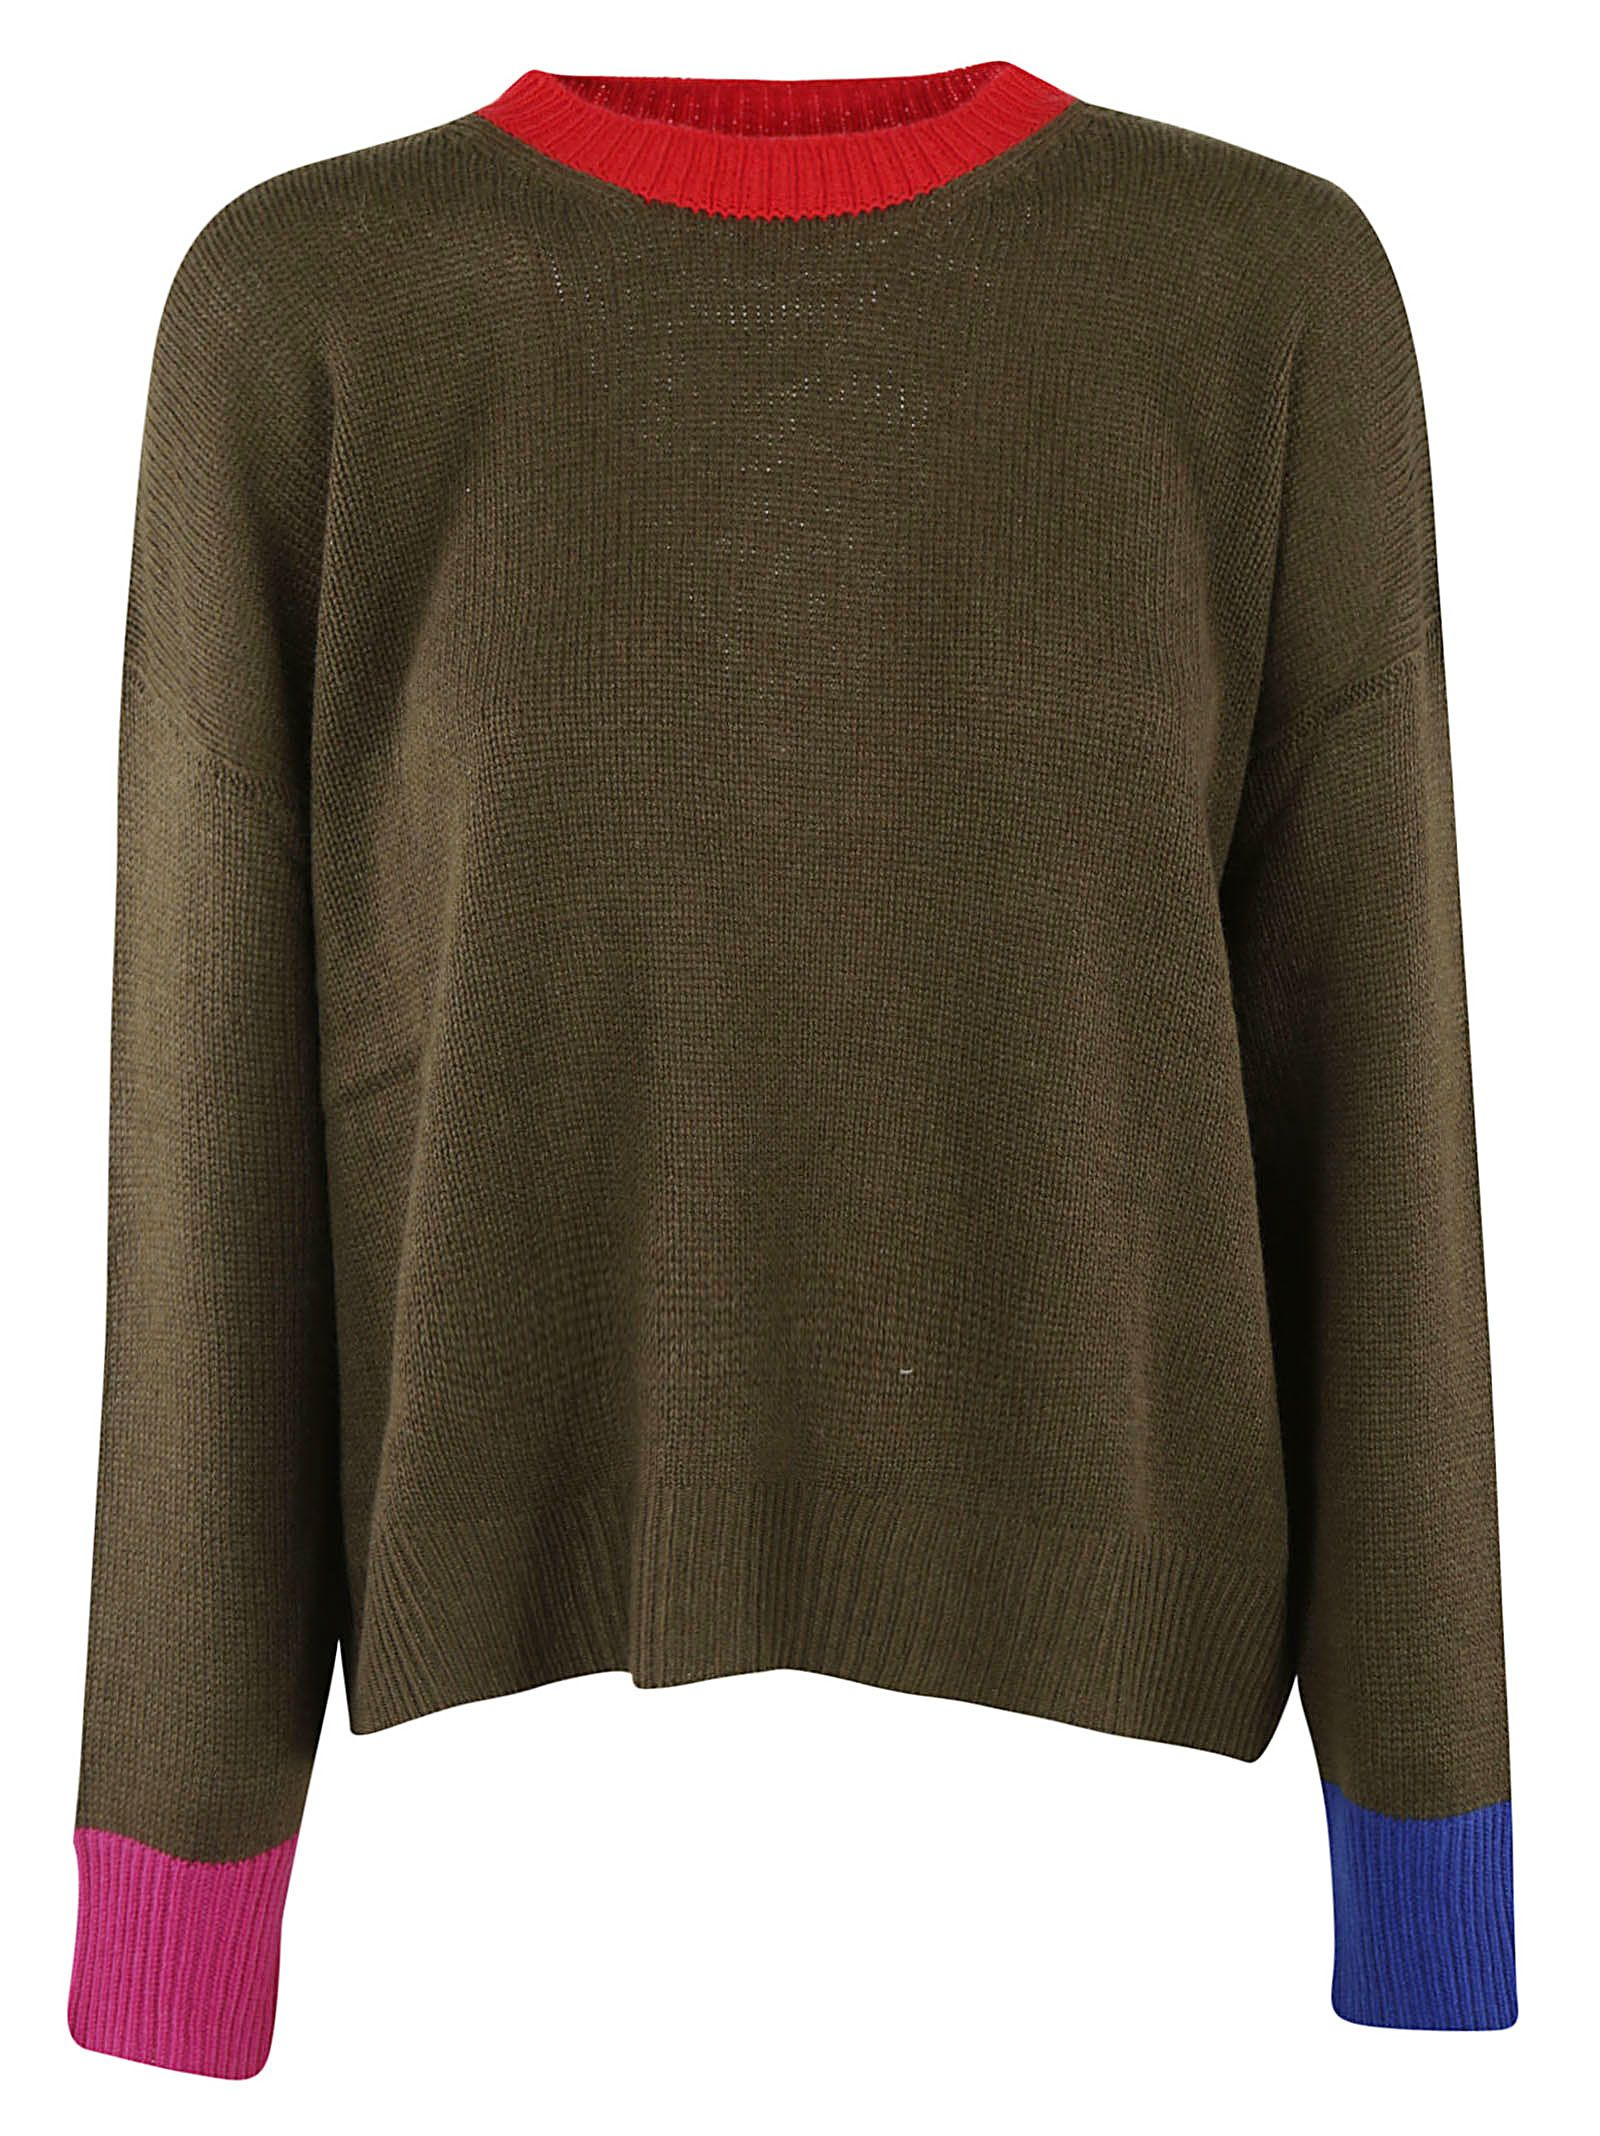 Marni Color-block Sweater